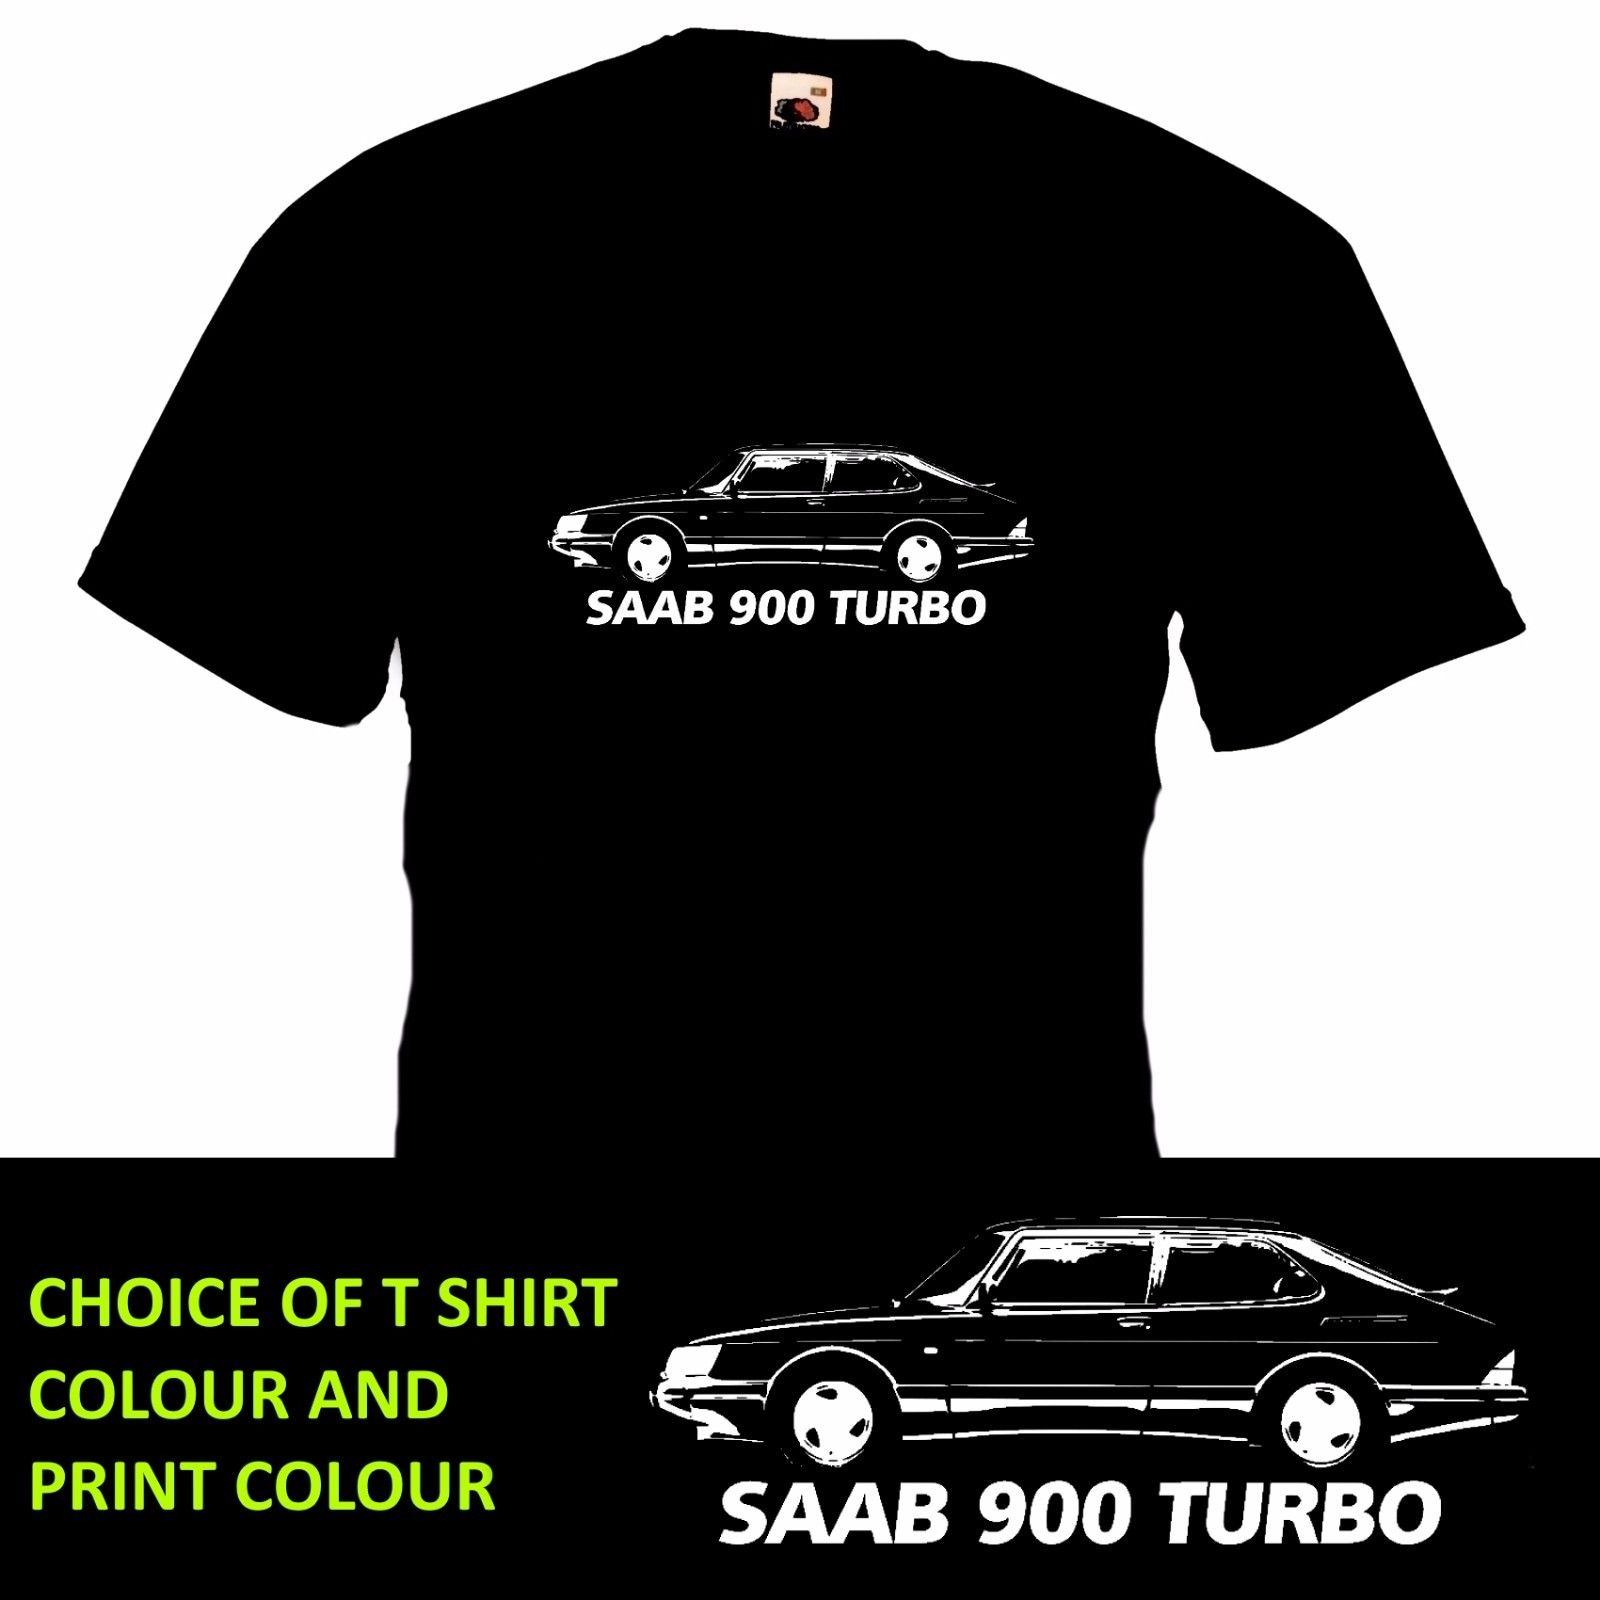 2018 New Cool Tee Shirt Britsh Classic Car 900 TURBO T SHIRT Retro Car Inspired Motoring Gift Dad Brother New Tee Cotton T-shirt